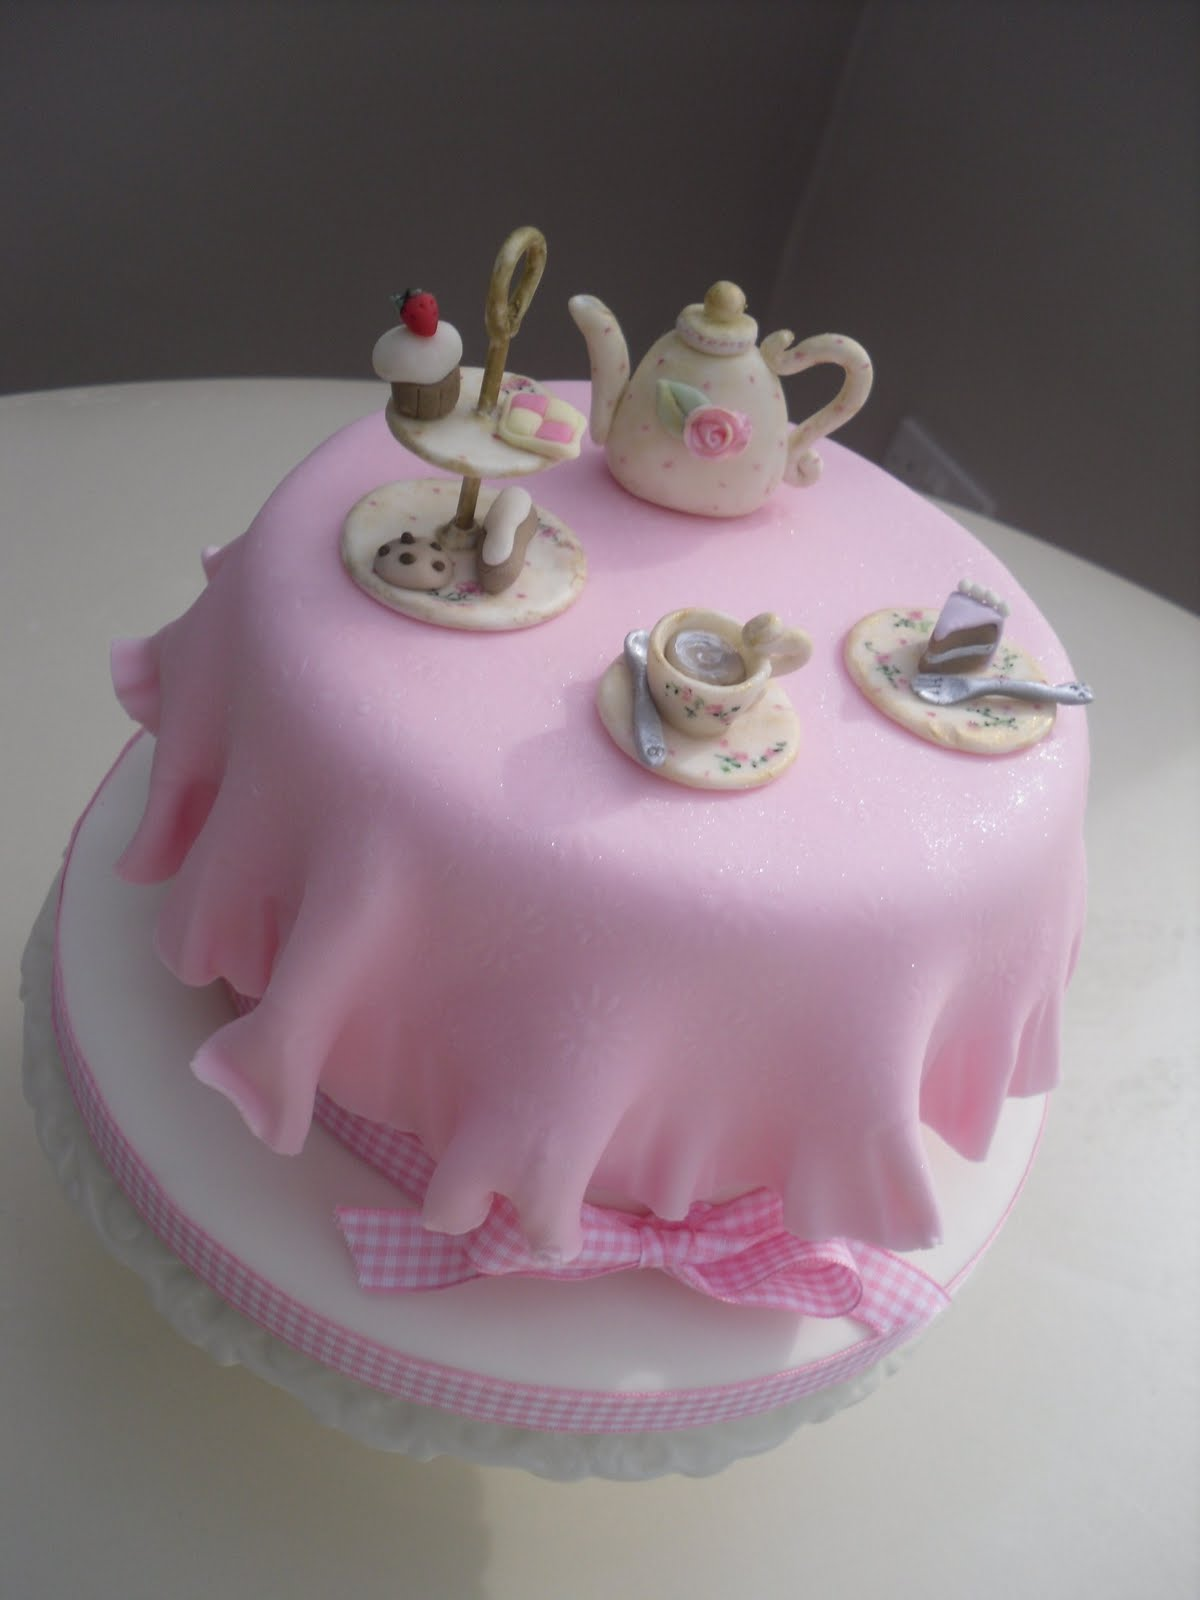 Katies Cupcakes Tea Party Cake